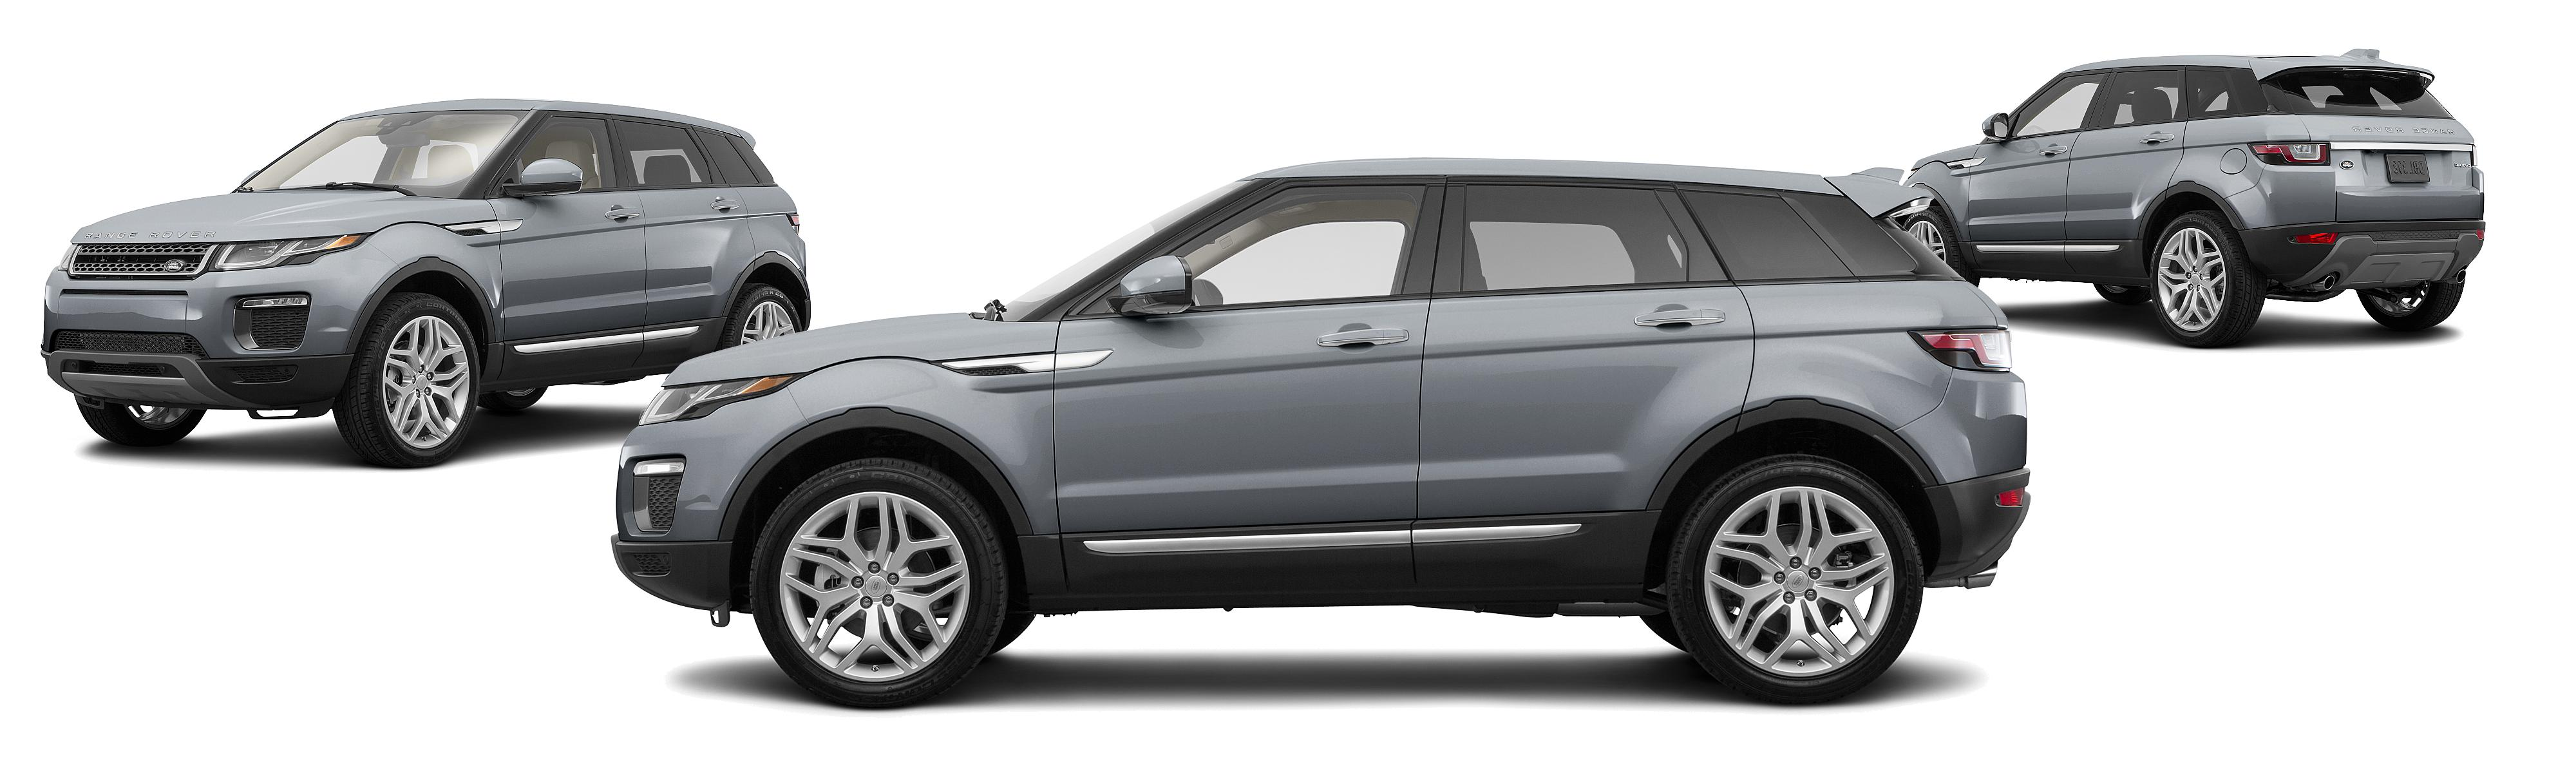 2016 Land Rover Range Rover Evoque AWD HSE 4dr SUV Research